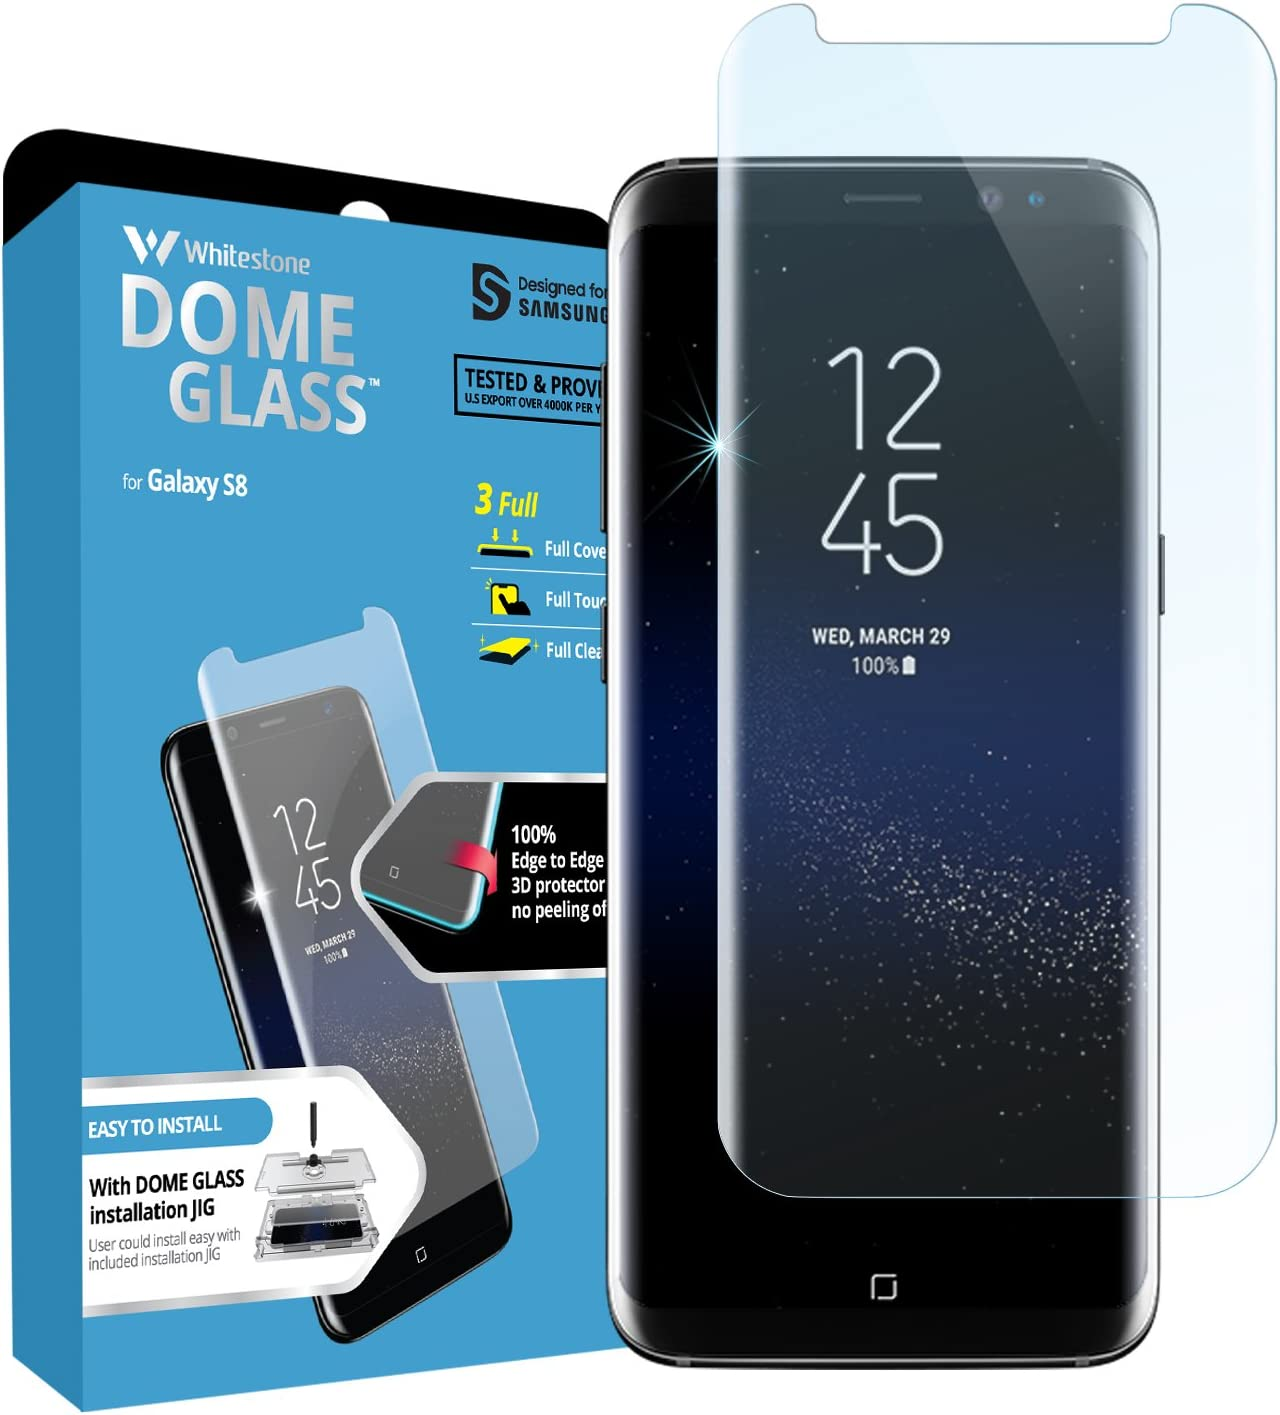 Galaxy S8 Screen Protector, [Dome Glass] Full Coverage 3D Curved Tempered Glass Shield [NO UV Light Included] Easy Install by Whitestone for Samsung Galaxy S8 (2017) - Replacement Only